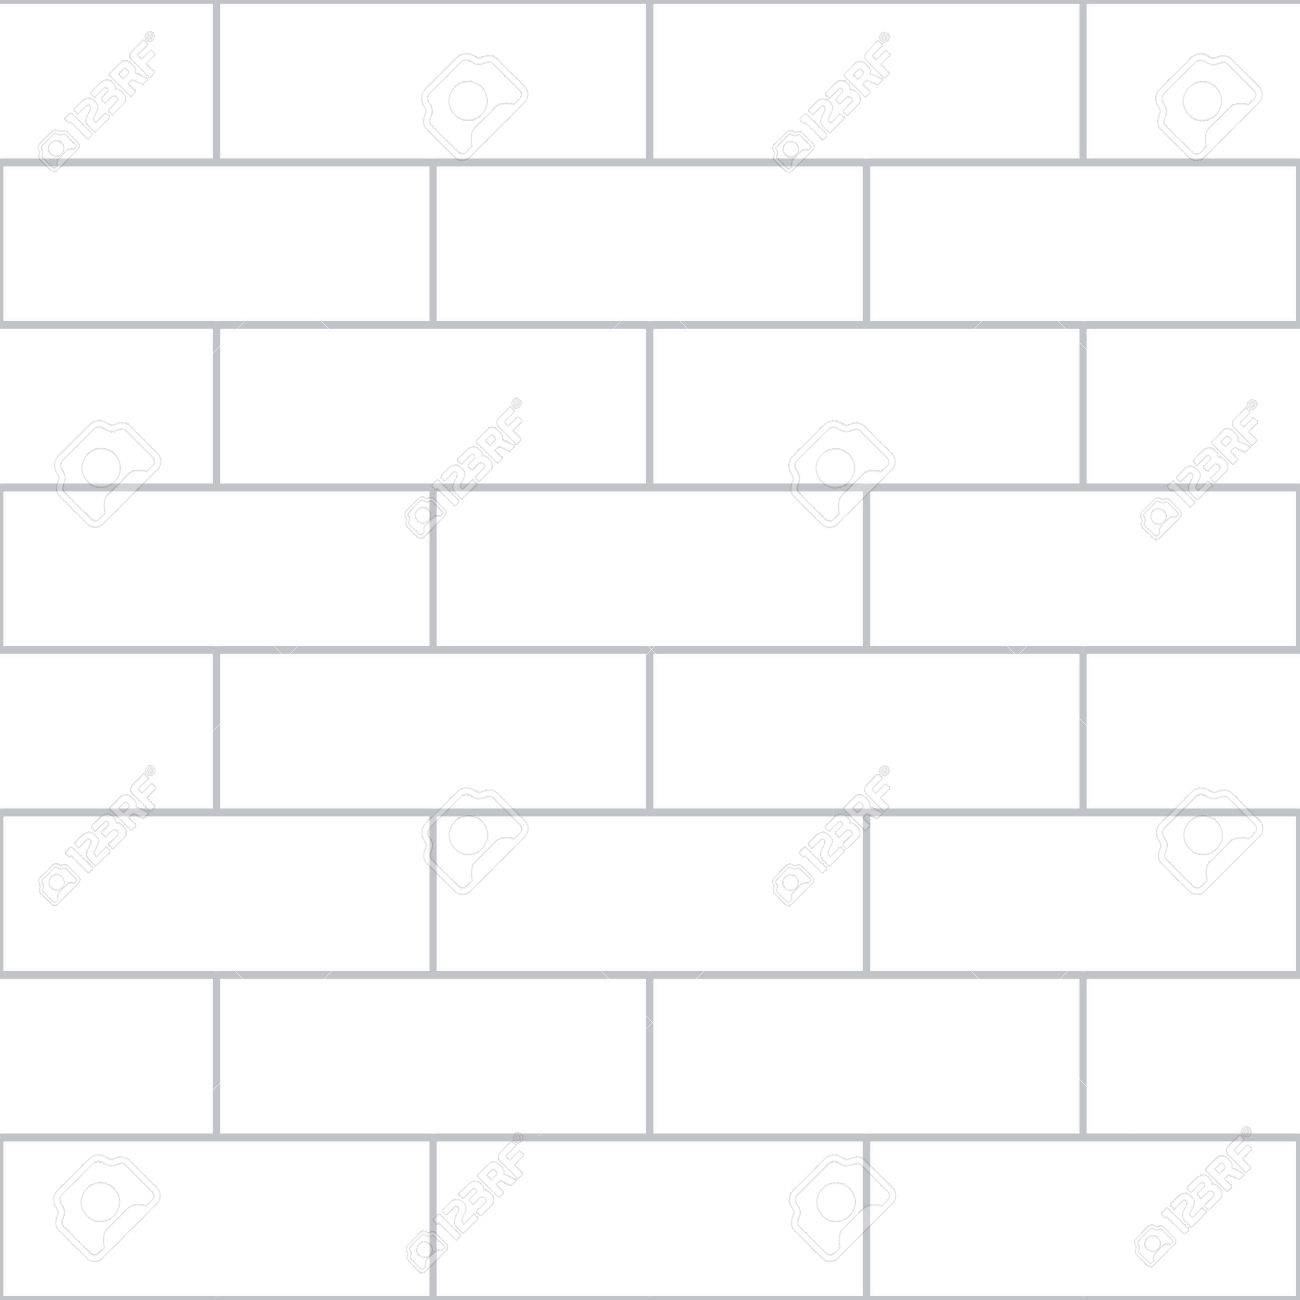 A vector illustration of a white brick wall. The wall covers the illustration from corner to corner, serving as both the background and the image. - 45725925